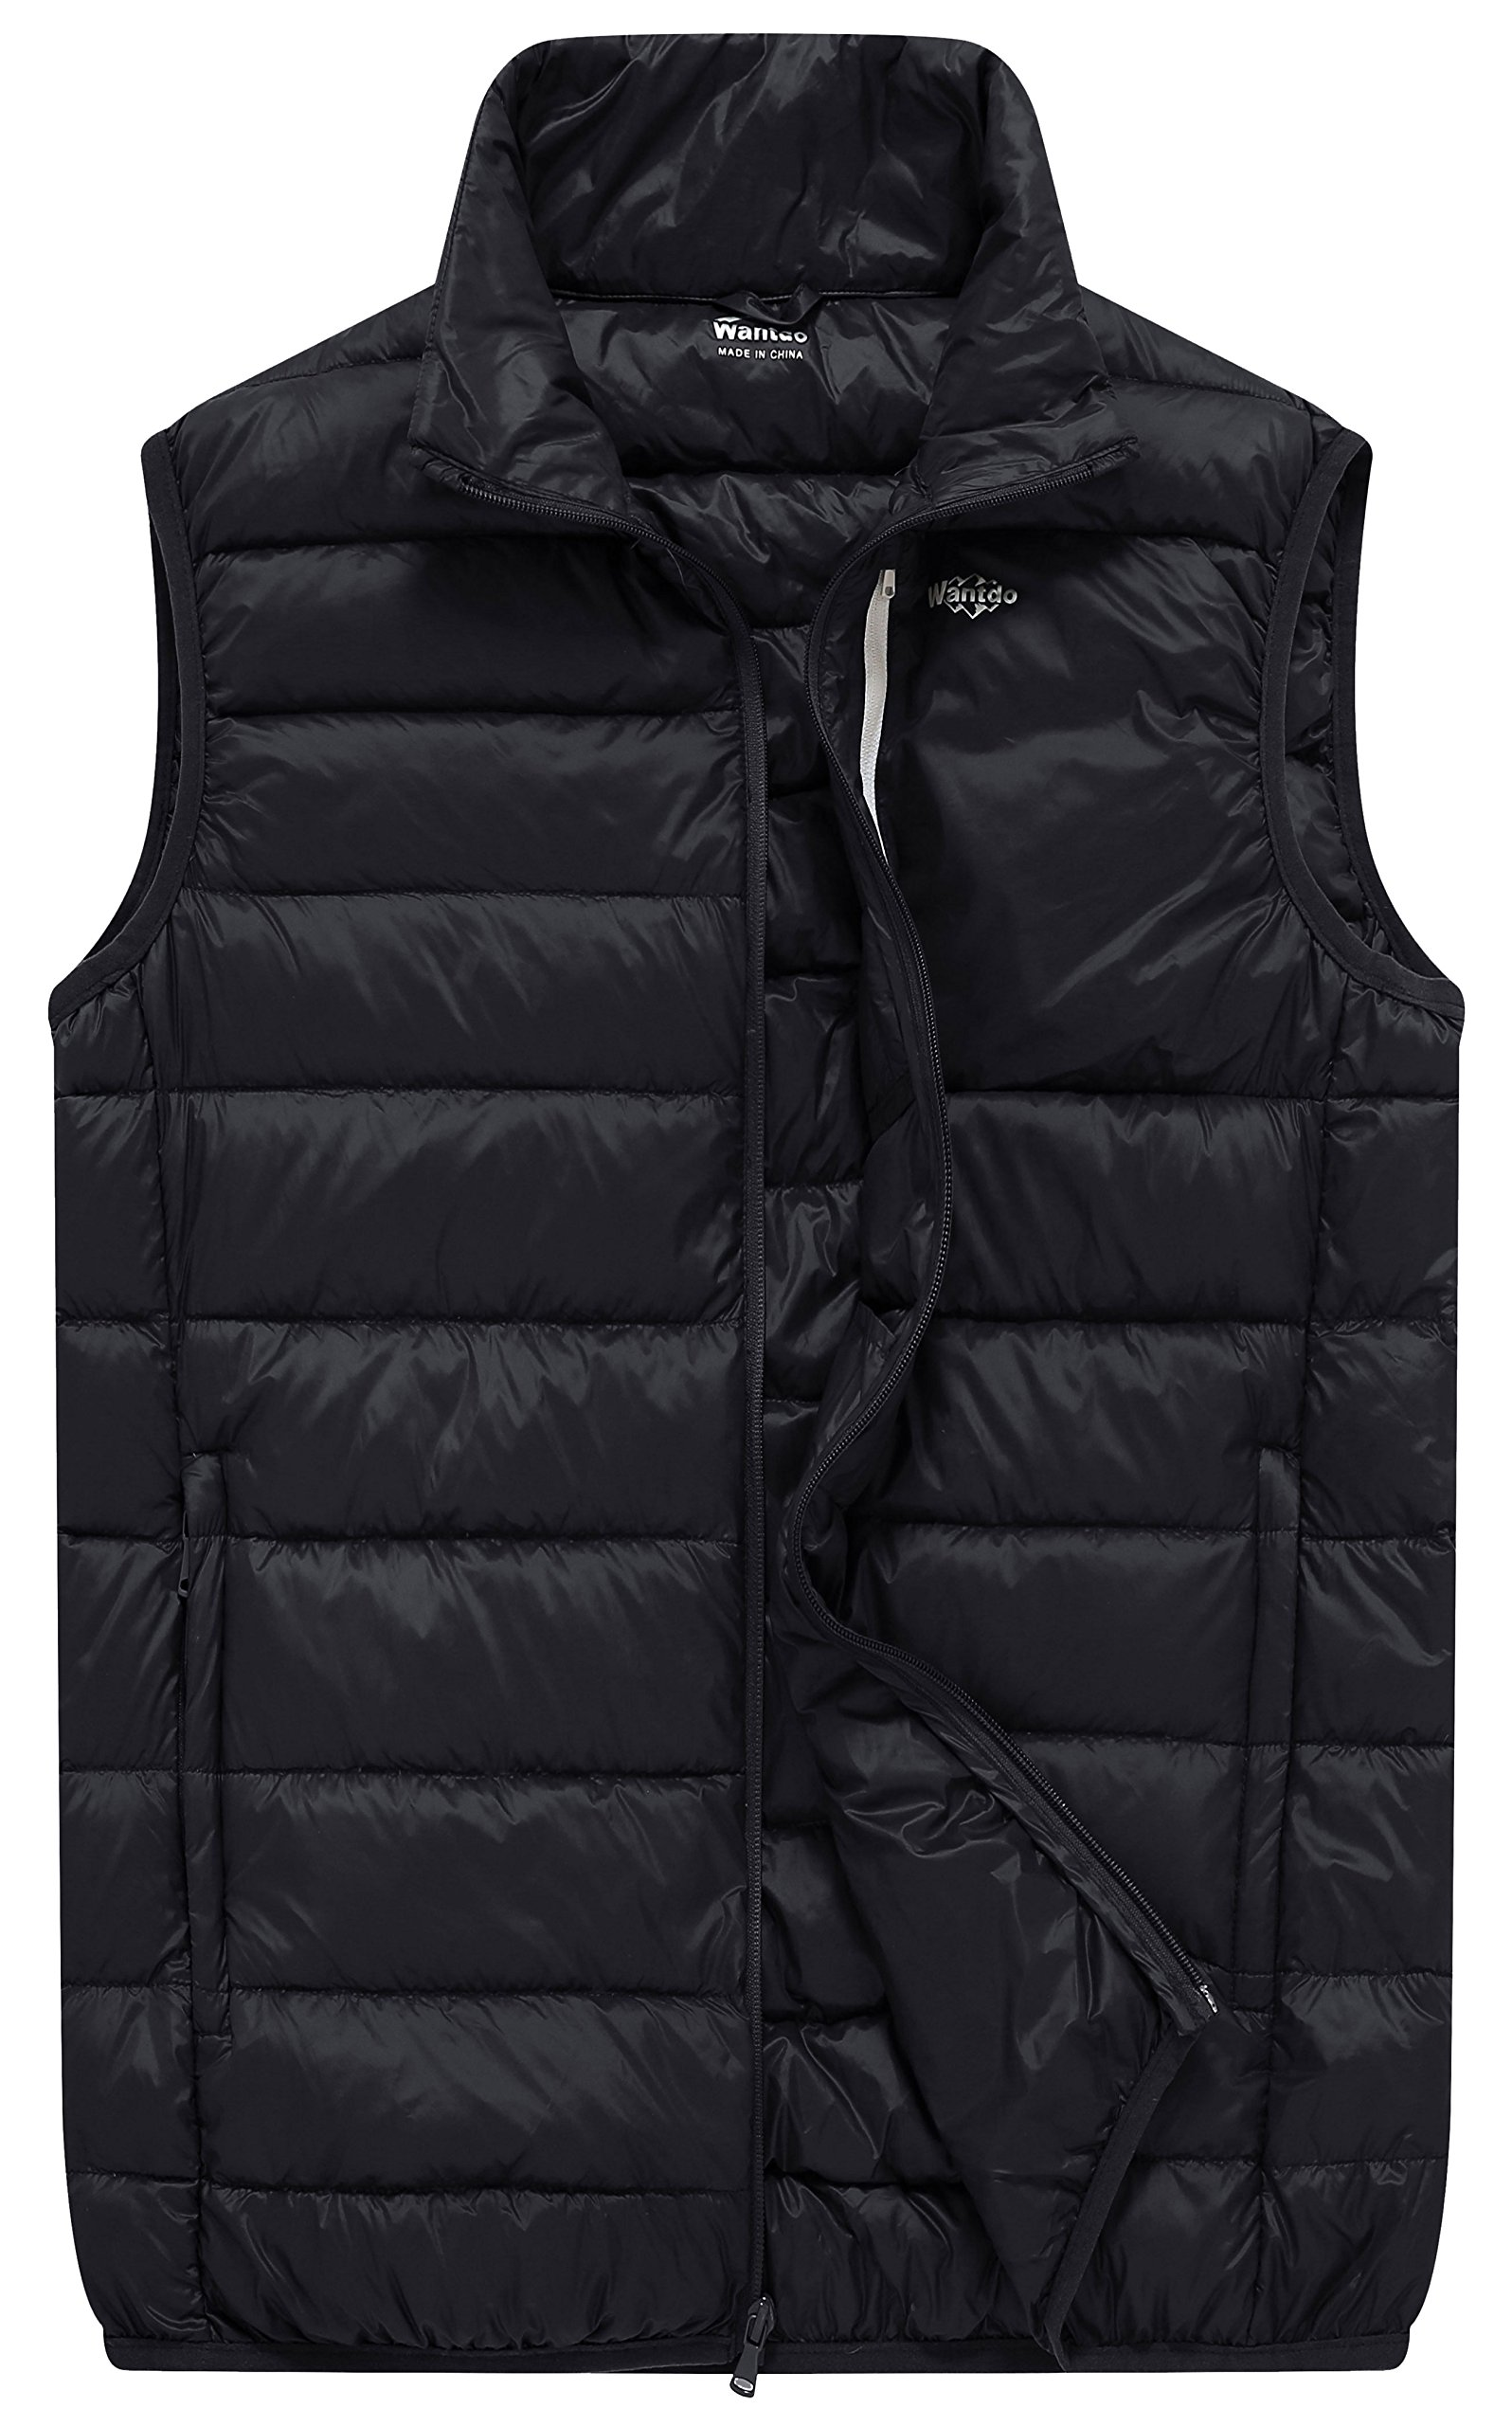 Wantdo Men's Packable Travel Down Vest Winter Jacket, Black, L by Wantdo